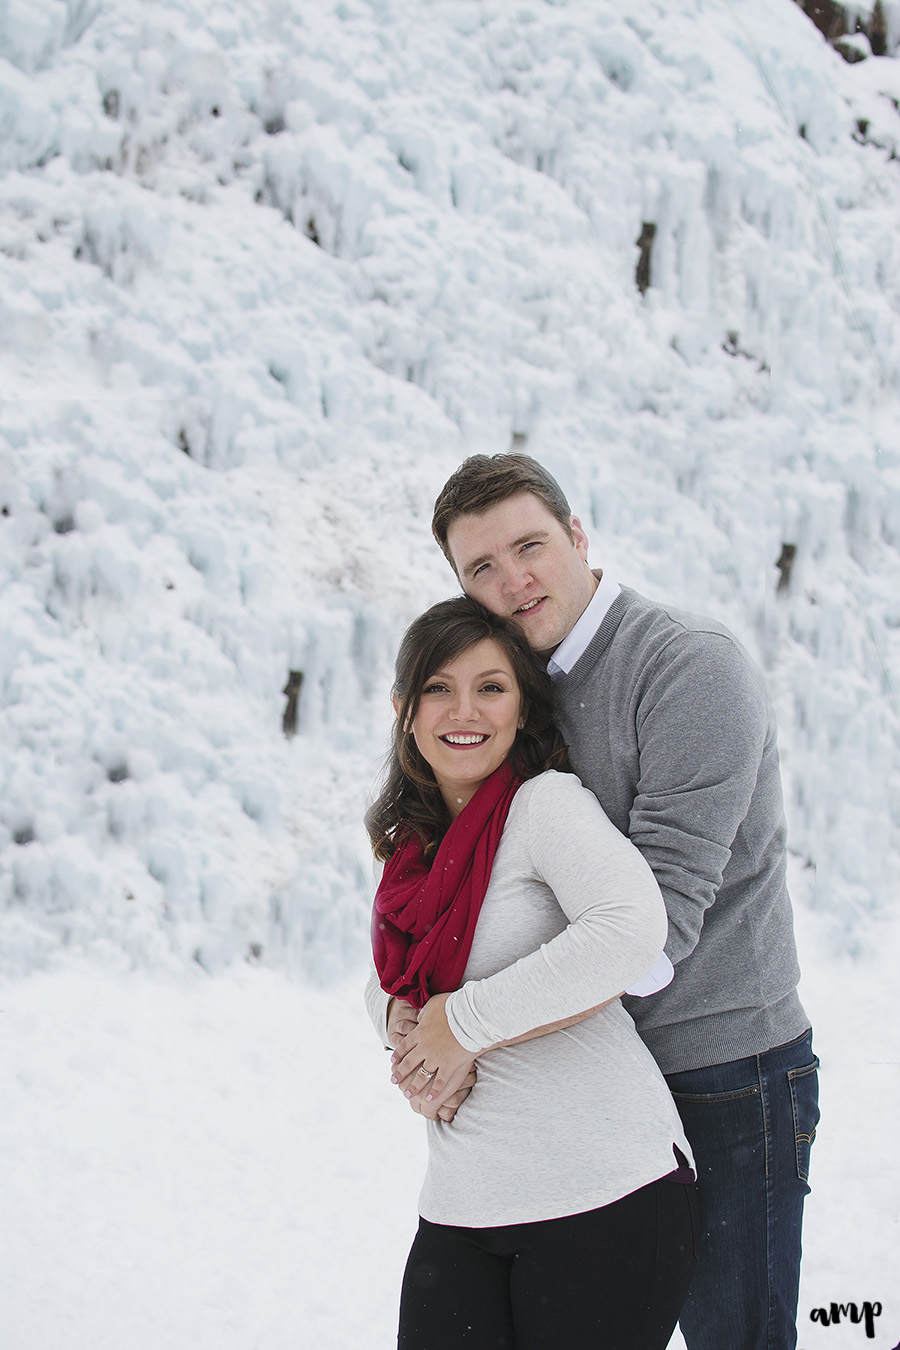 Ouray Ice Park Engagement Session | amanda.matilda.photography